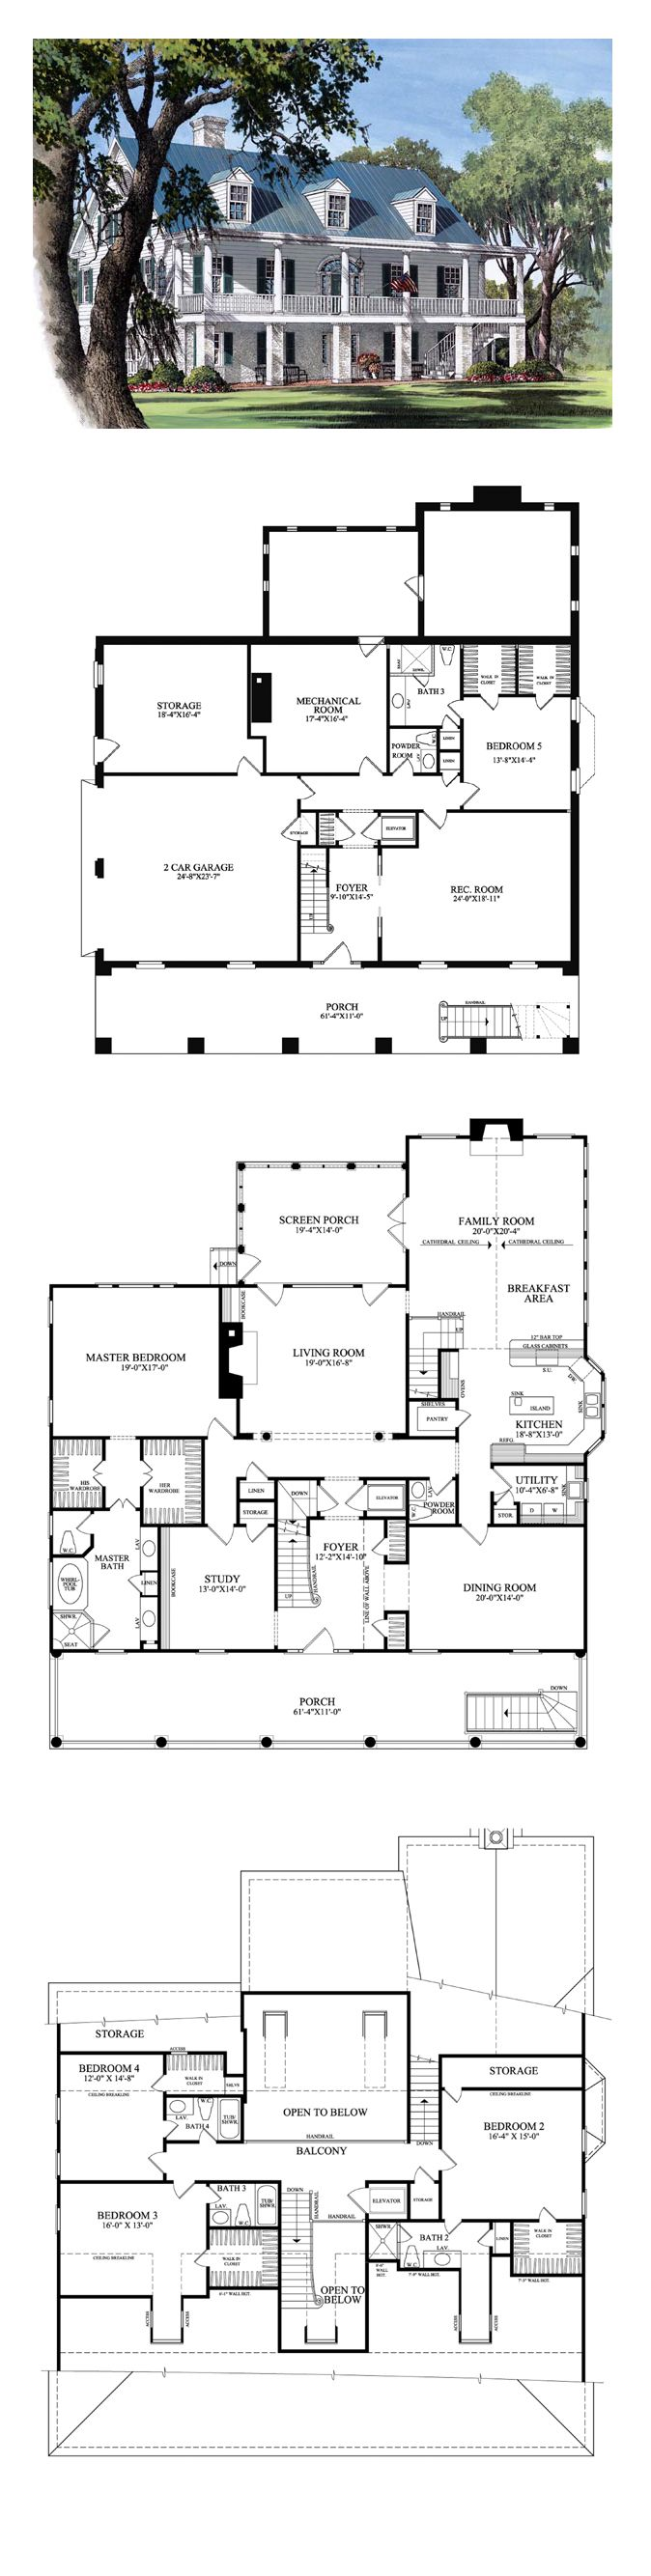 Plantation House Plan 86178 | Total Living Area: 4298 sq. ft., 5 bedrooms and 4.2 bathrooms. #plantationhome